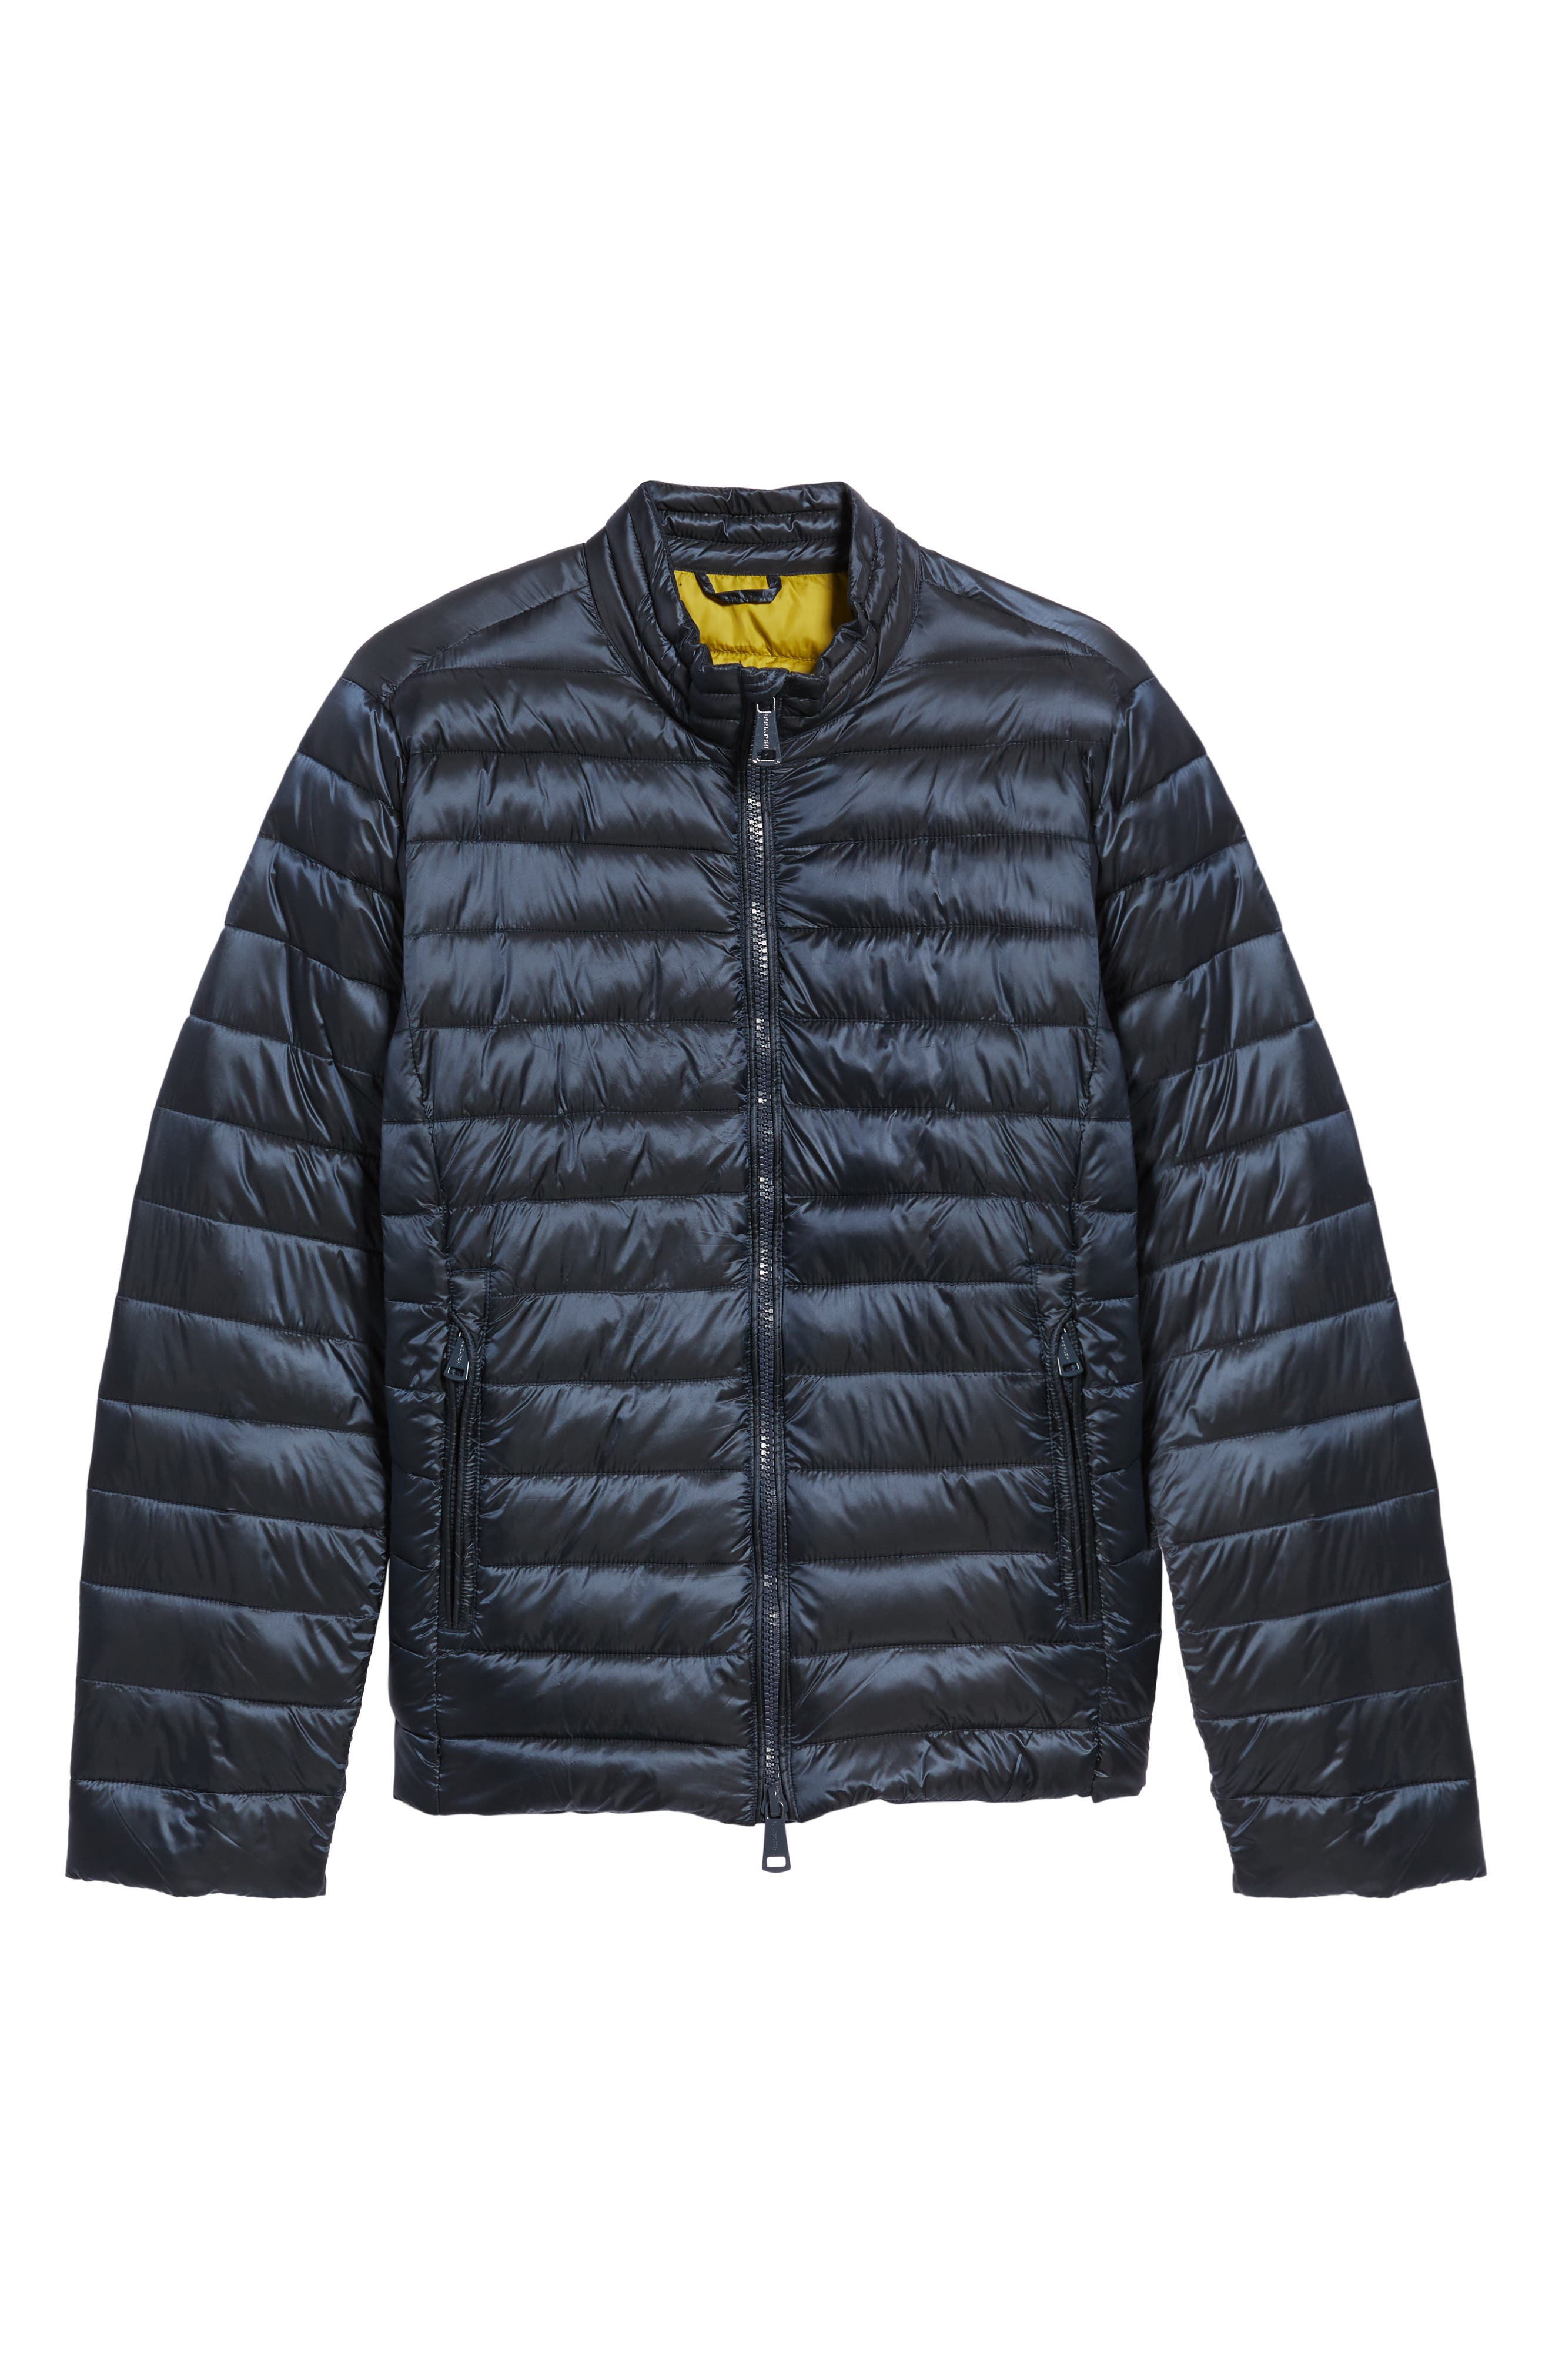 Channel Quilted Jacket,                             Alternate thumbnail 5, color,                             411